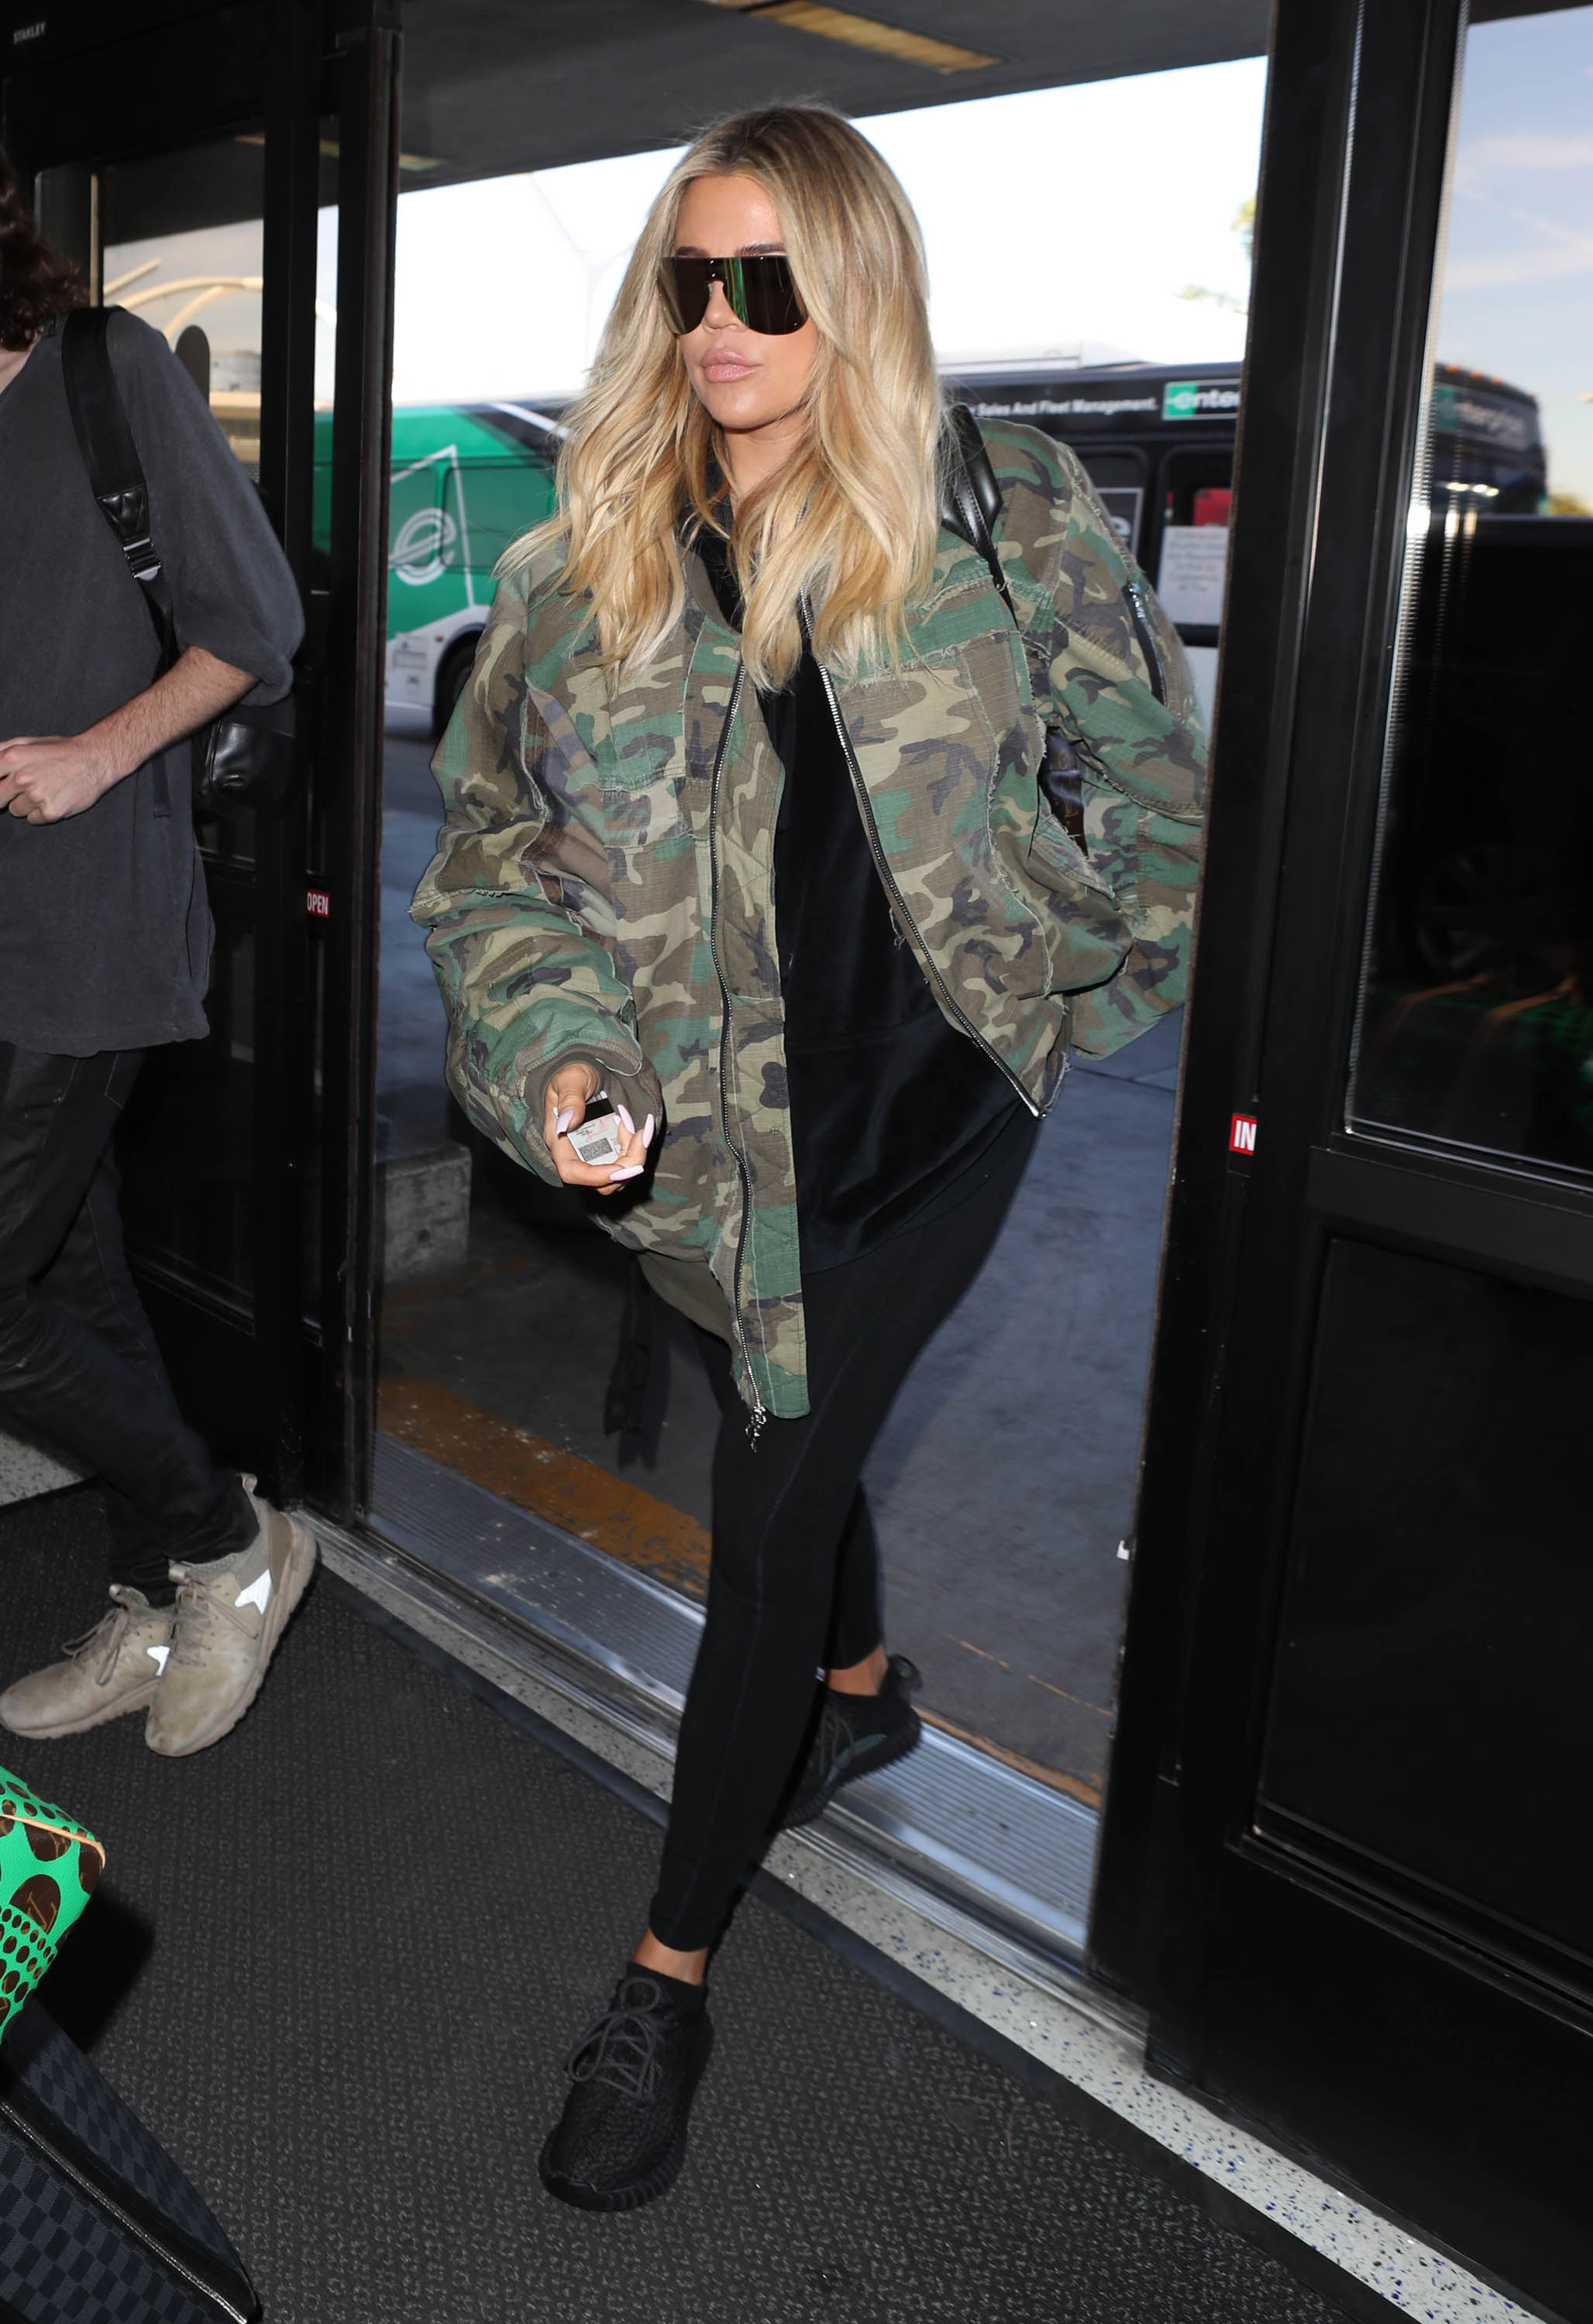 Khloé-Kardashian-Hides-Her-Baby-Bump-At-The-Airport